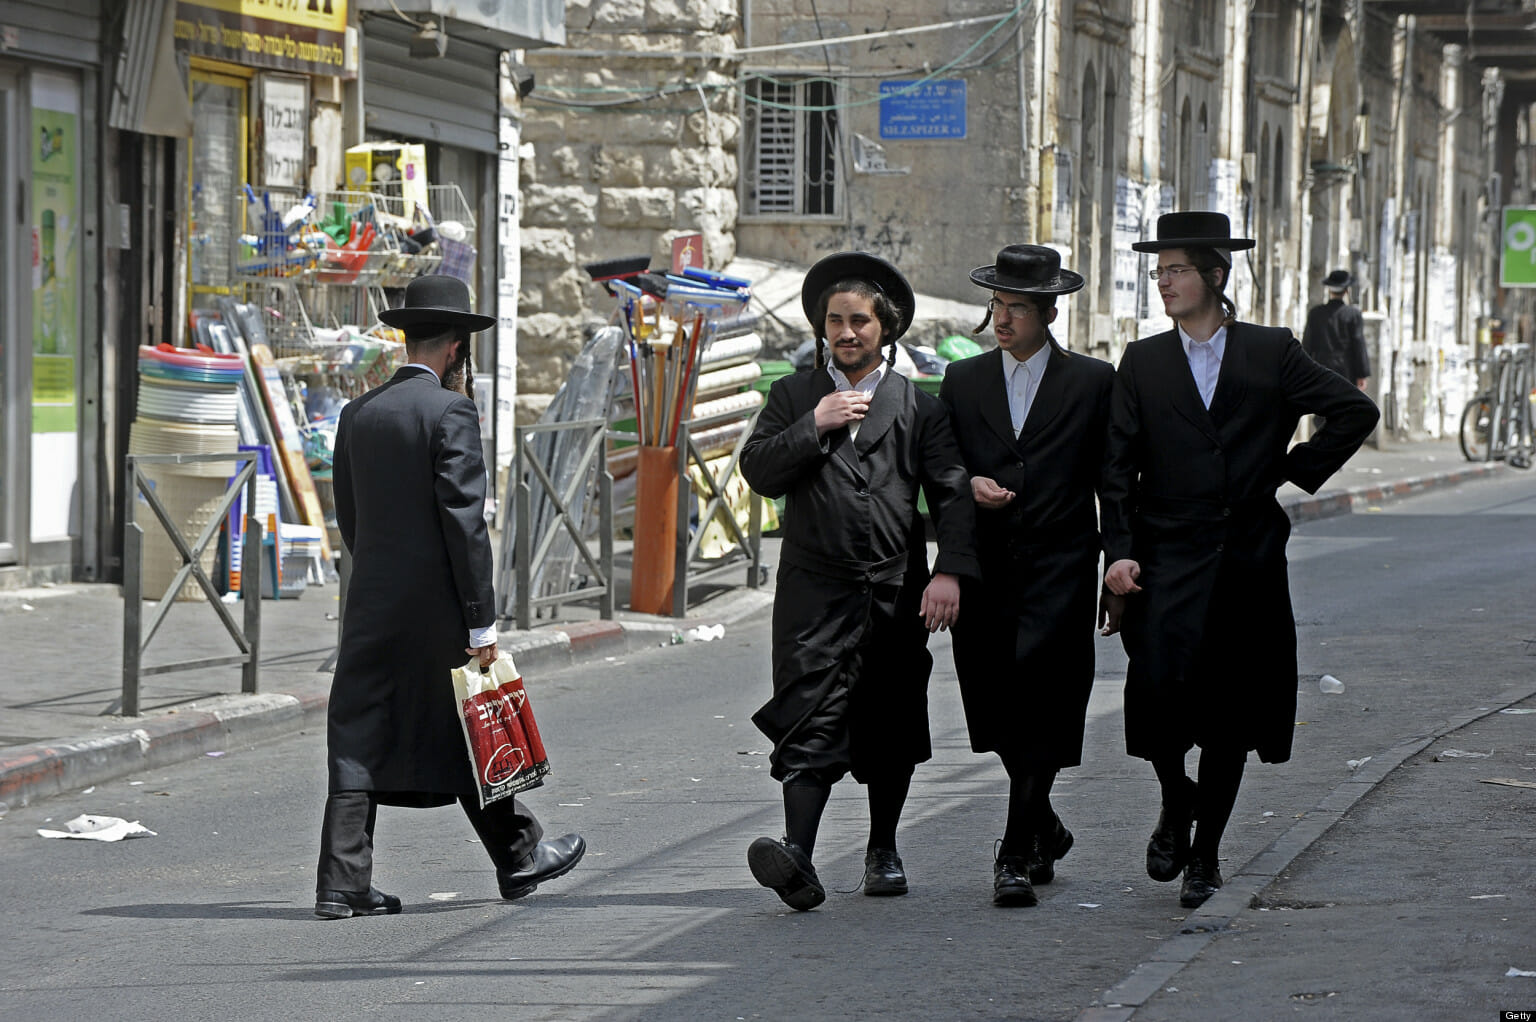 jewish single men in street Dating jewish men - if you are looking for someone to love you, begin using our dating site girls and men are waiting for you, sign up right now.